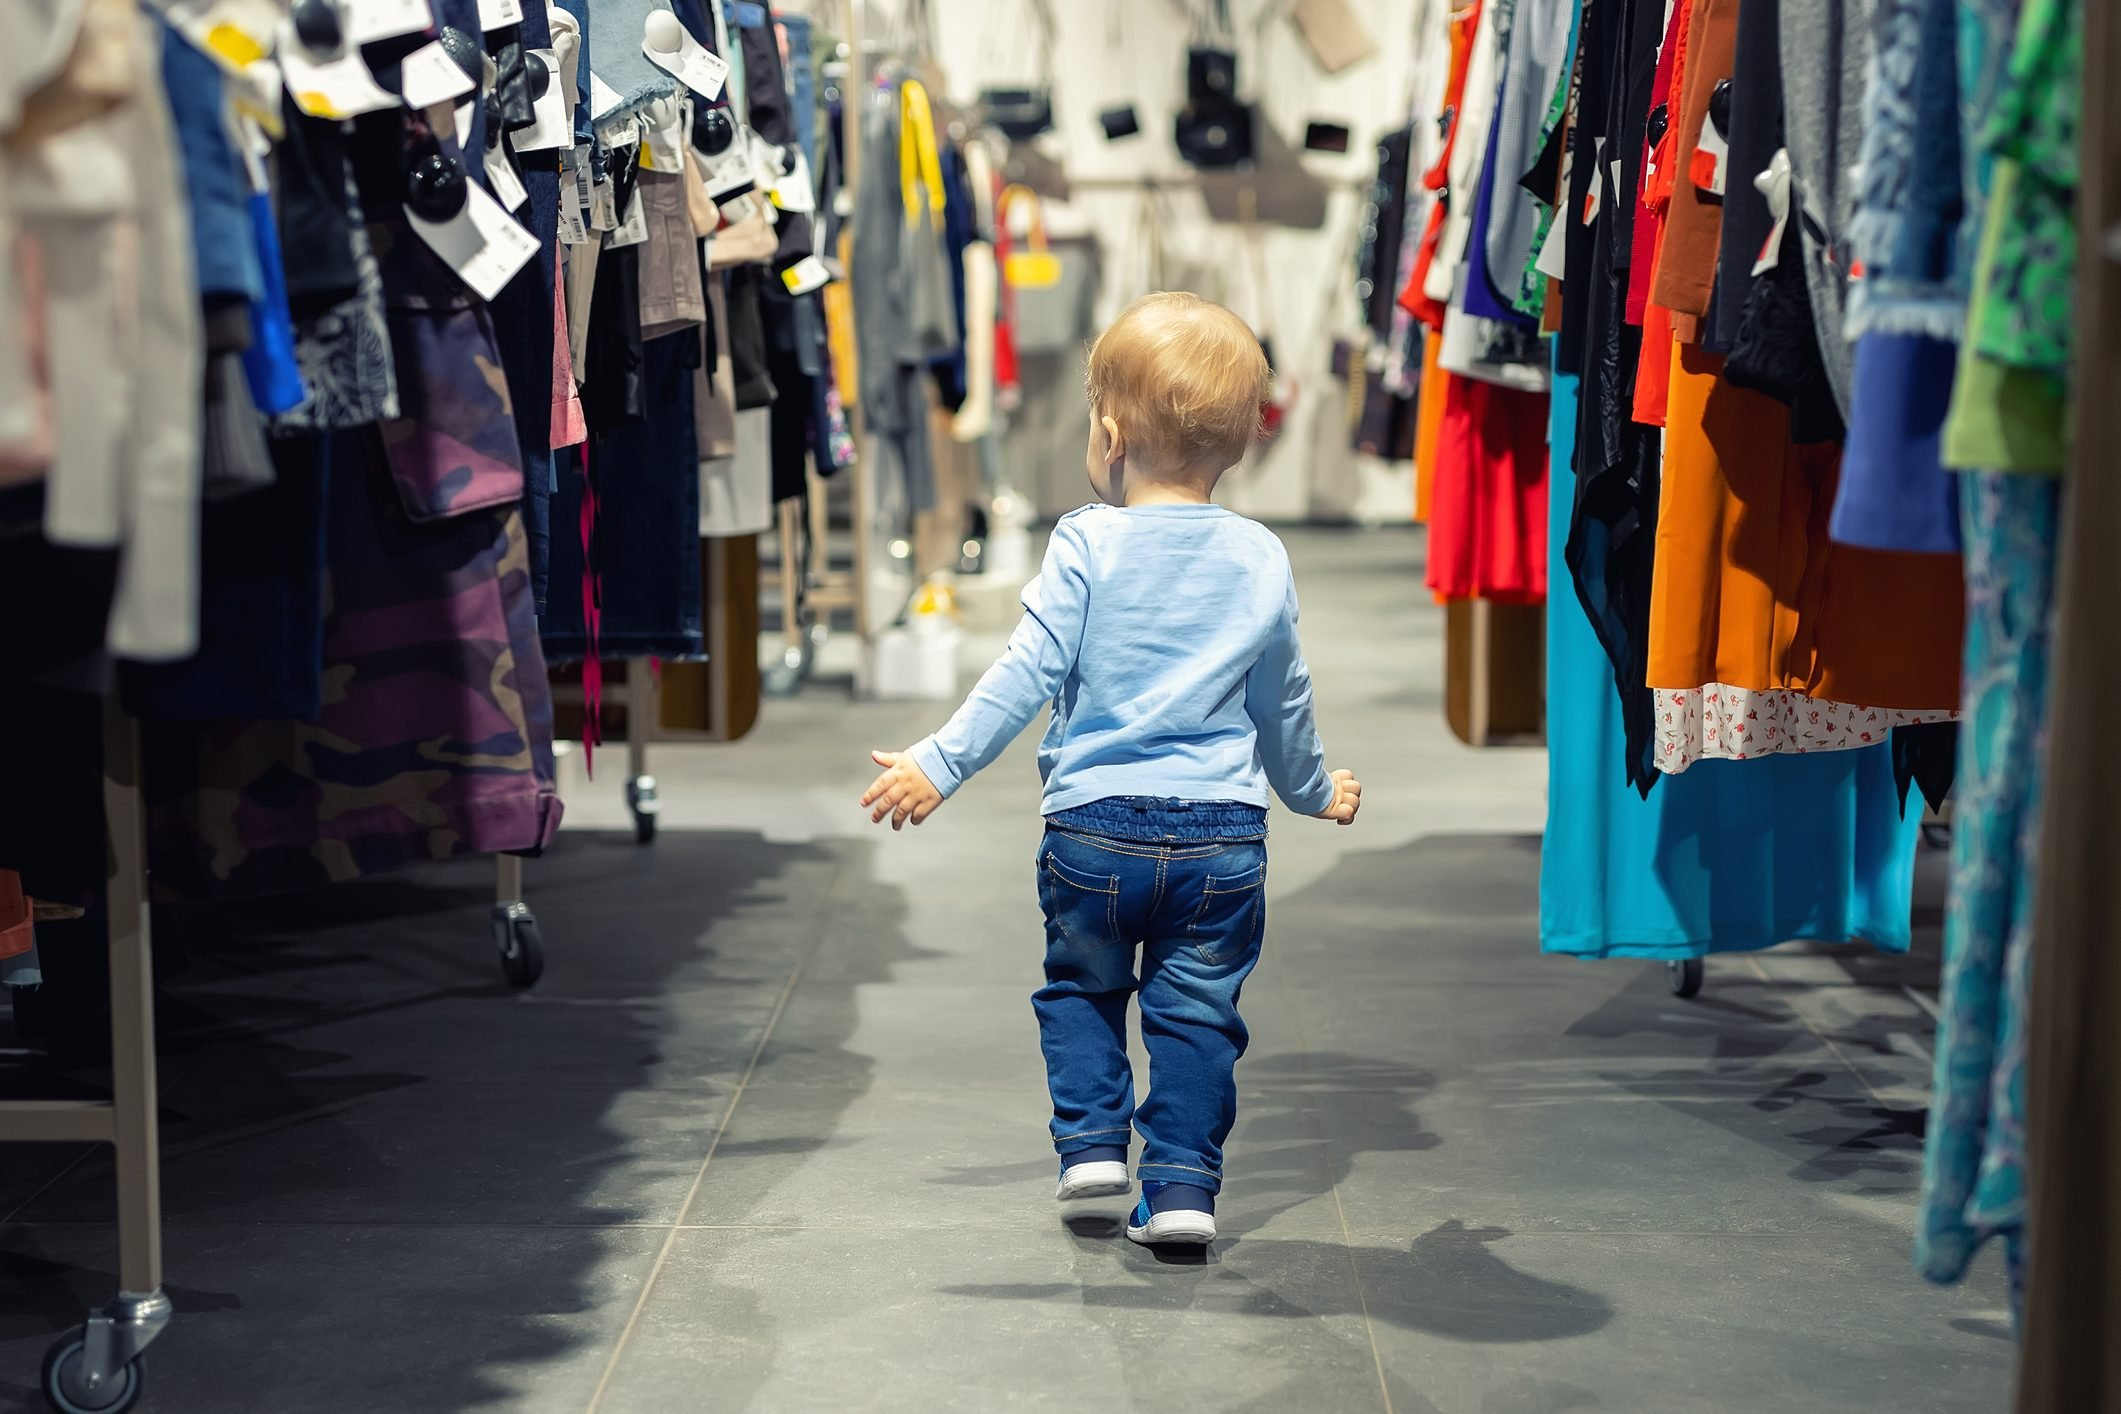 Rear View Of Boy Amidst Clothes In Store